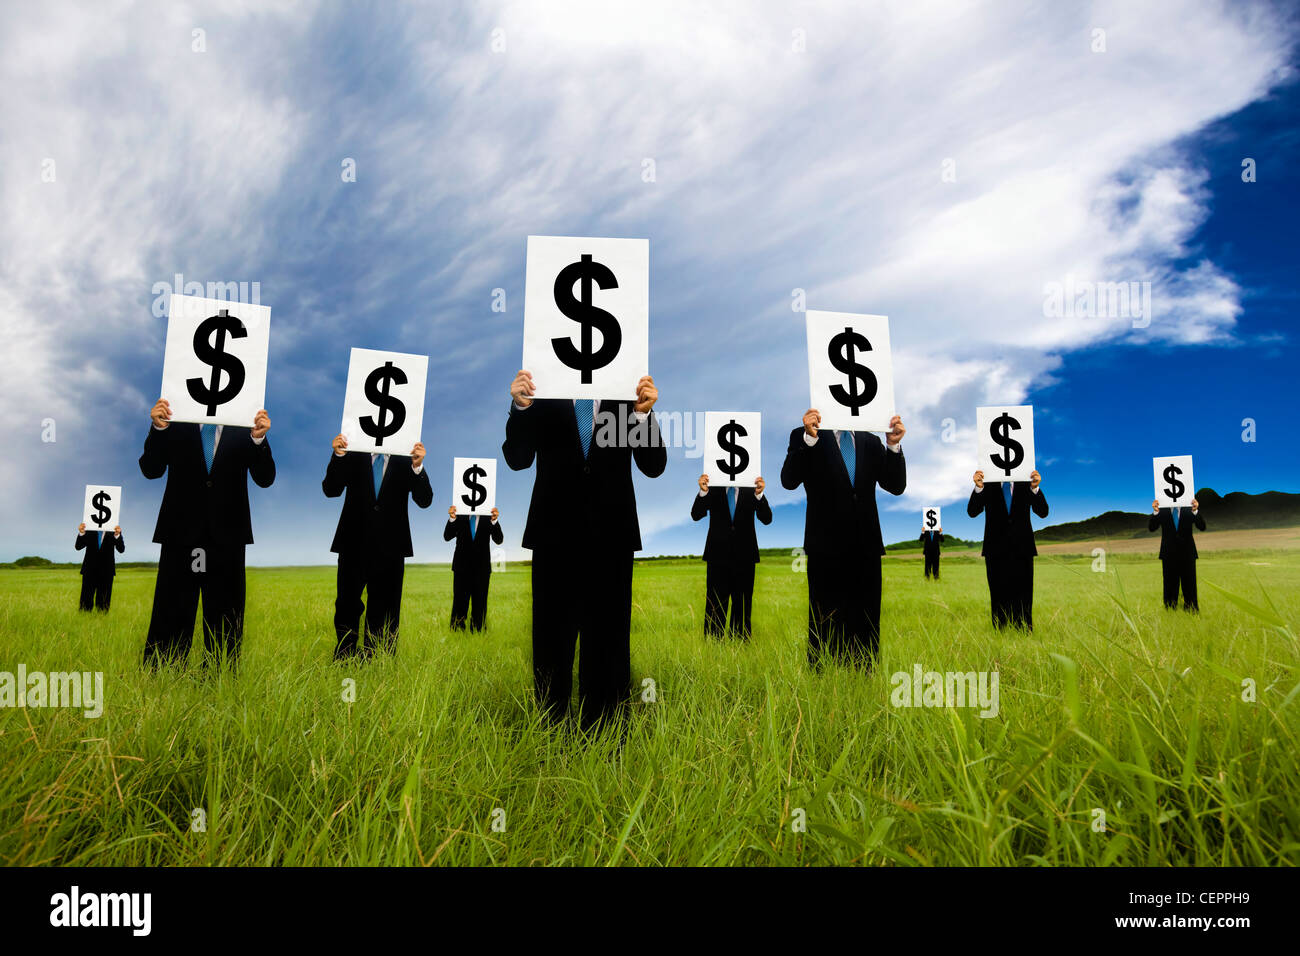 group of businessman holding money symbol and stand in the field - Stock Image